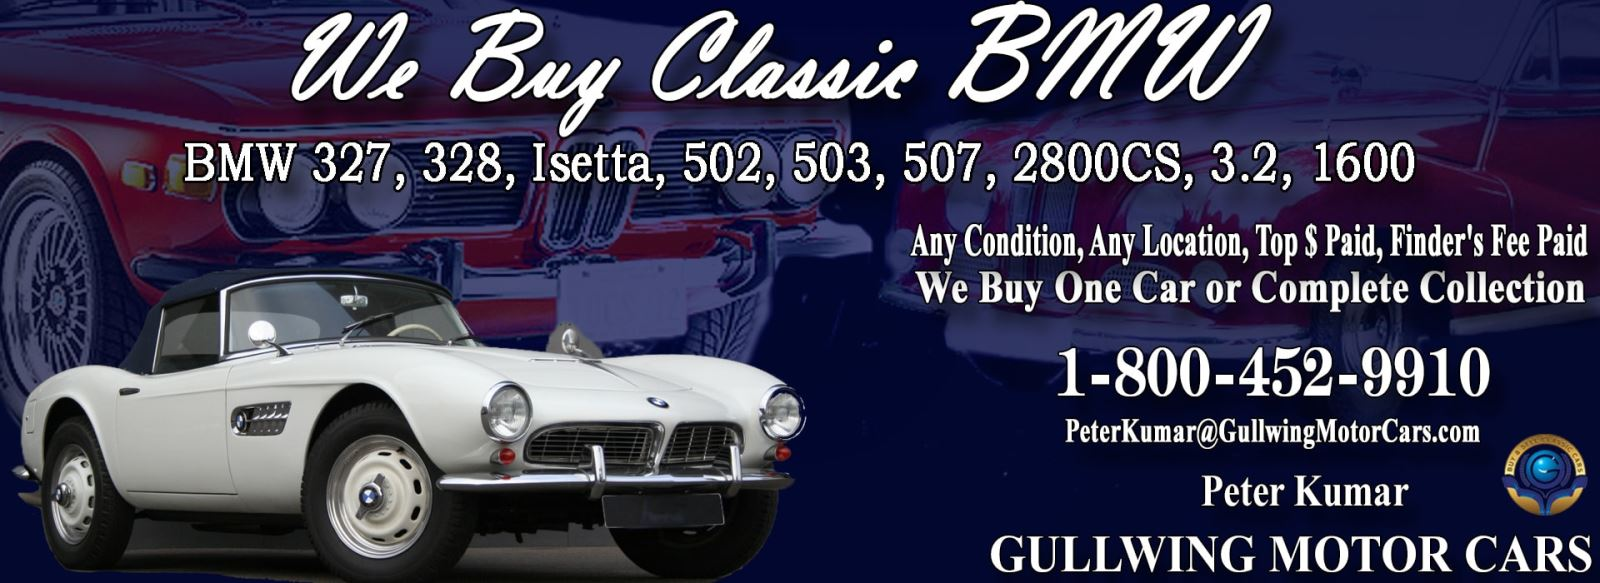 Classic BMW 2800 CS for sale, we buy vintage BMW 2800CS. Call Peter Kumar. Gullwing Motor